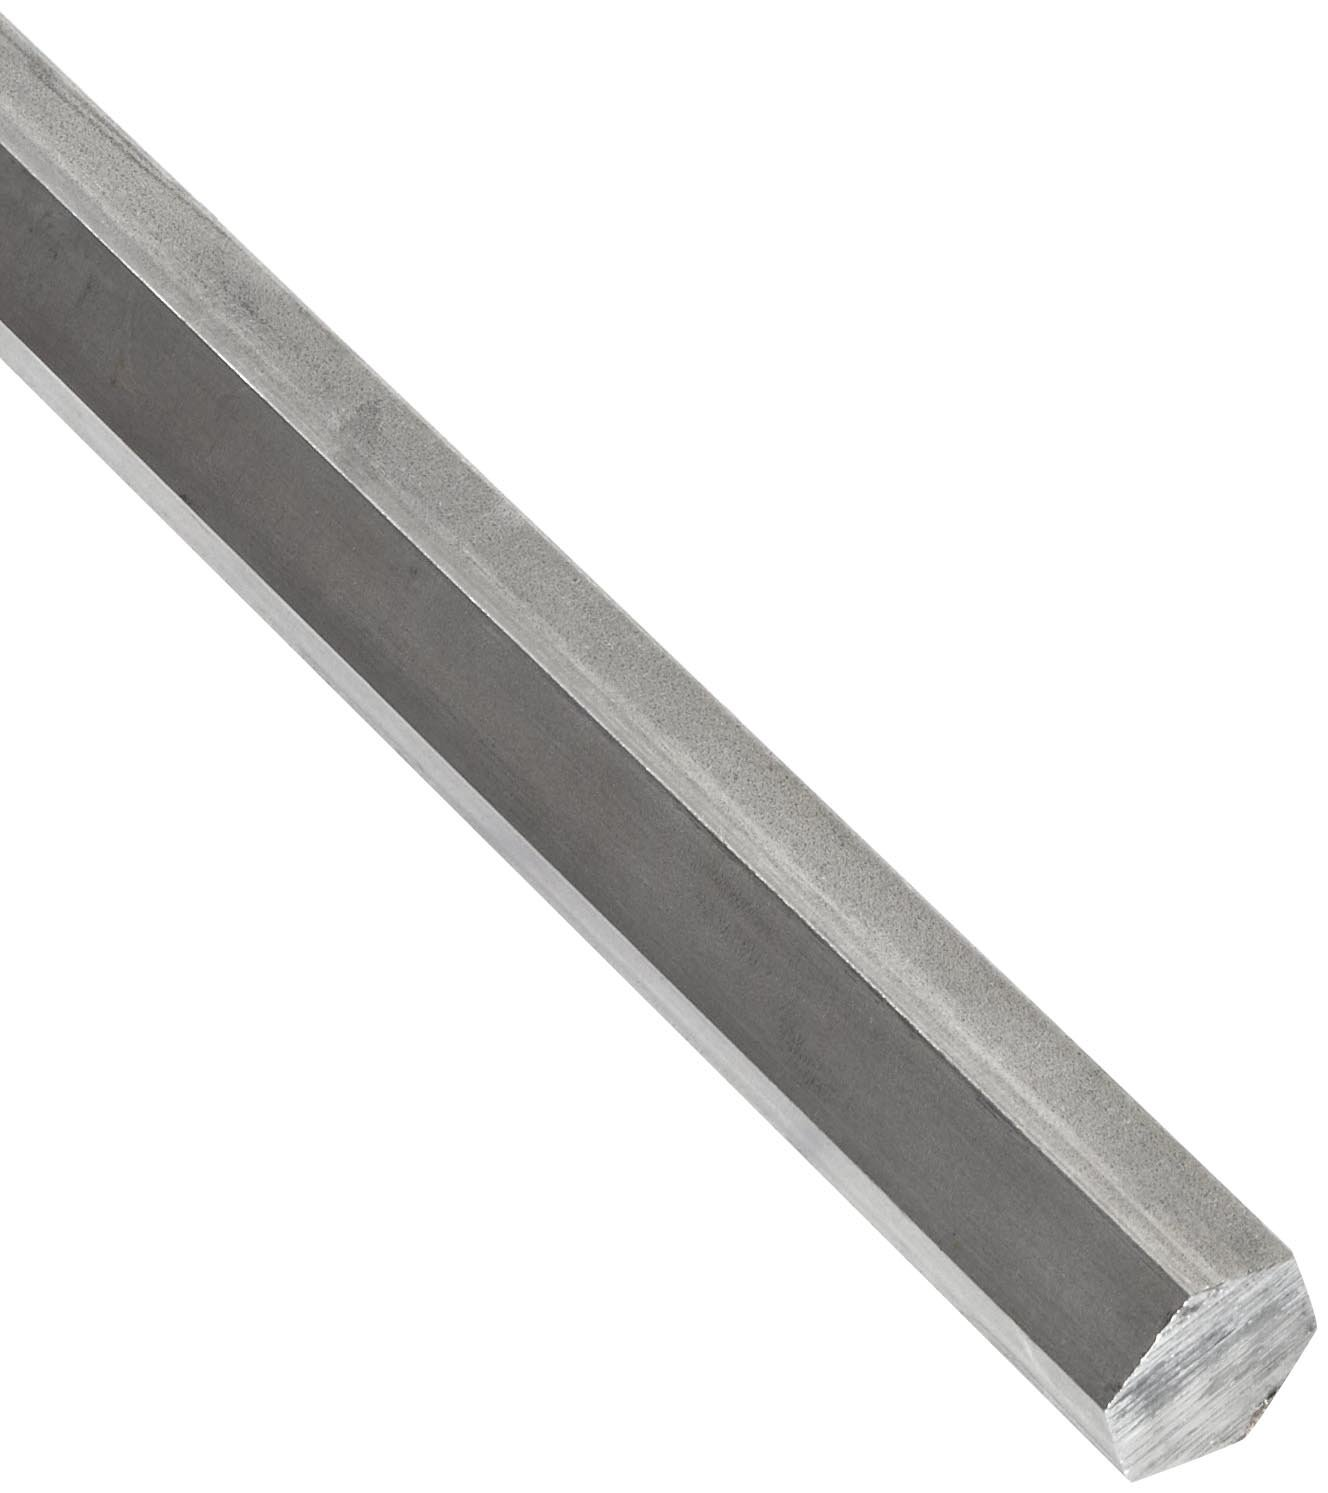 304 Stainless Steel Hex Bar, Unpolished (Mill) Finish, Annealed, 0 (Annealed) Temper, Precision Tolerance, ASTM A276 1